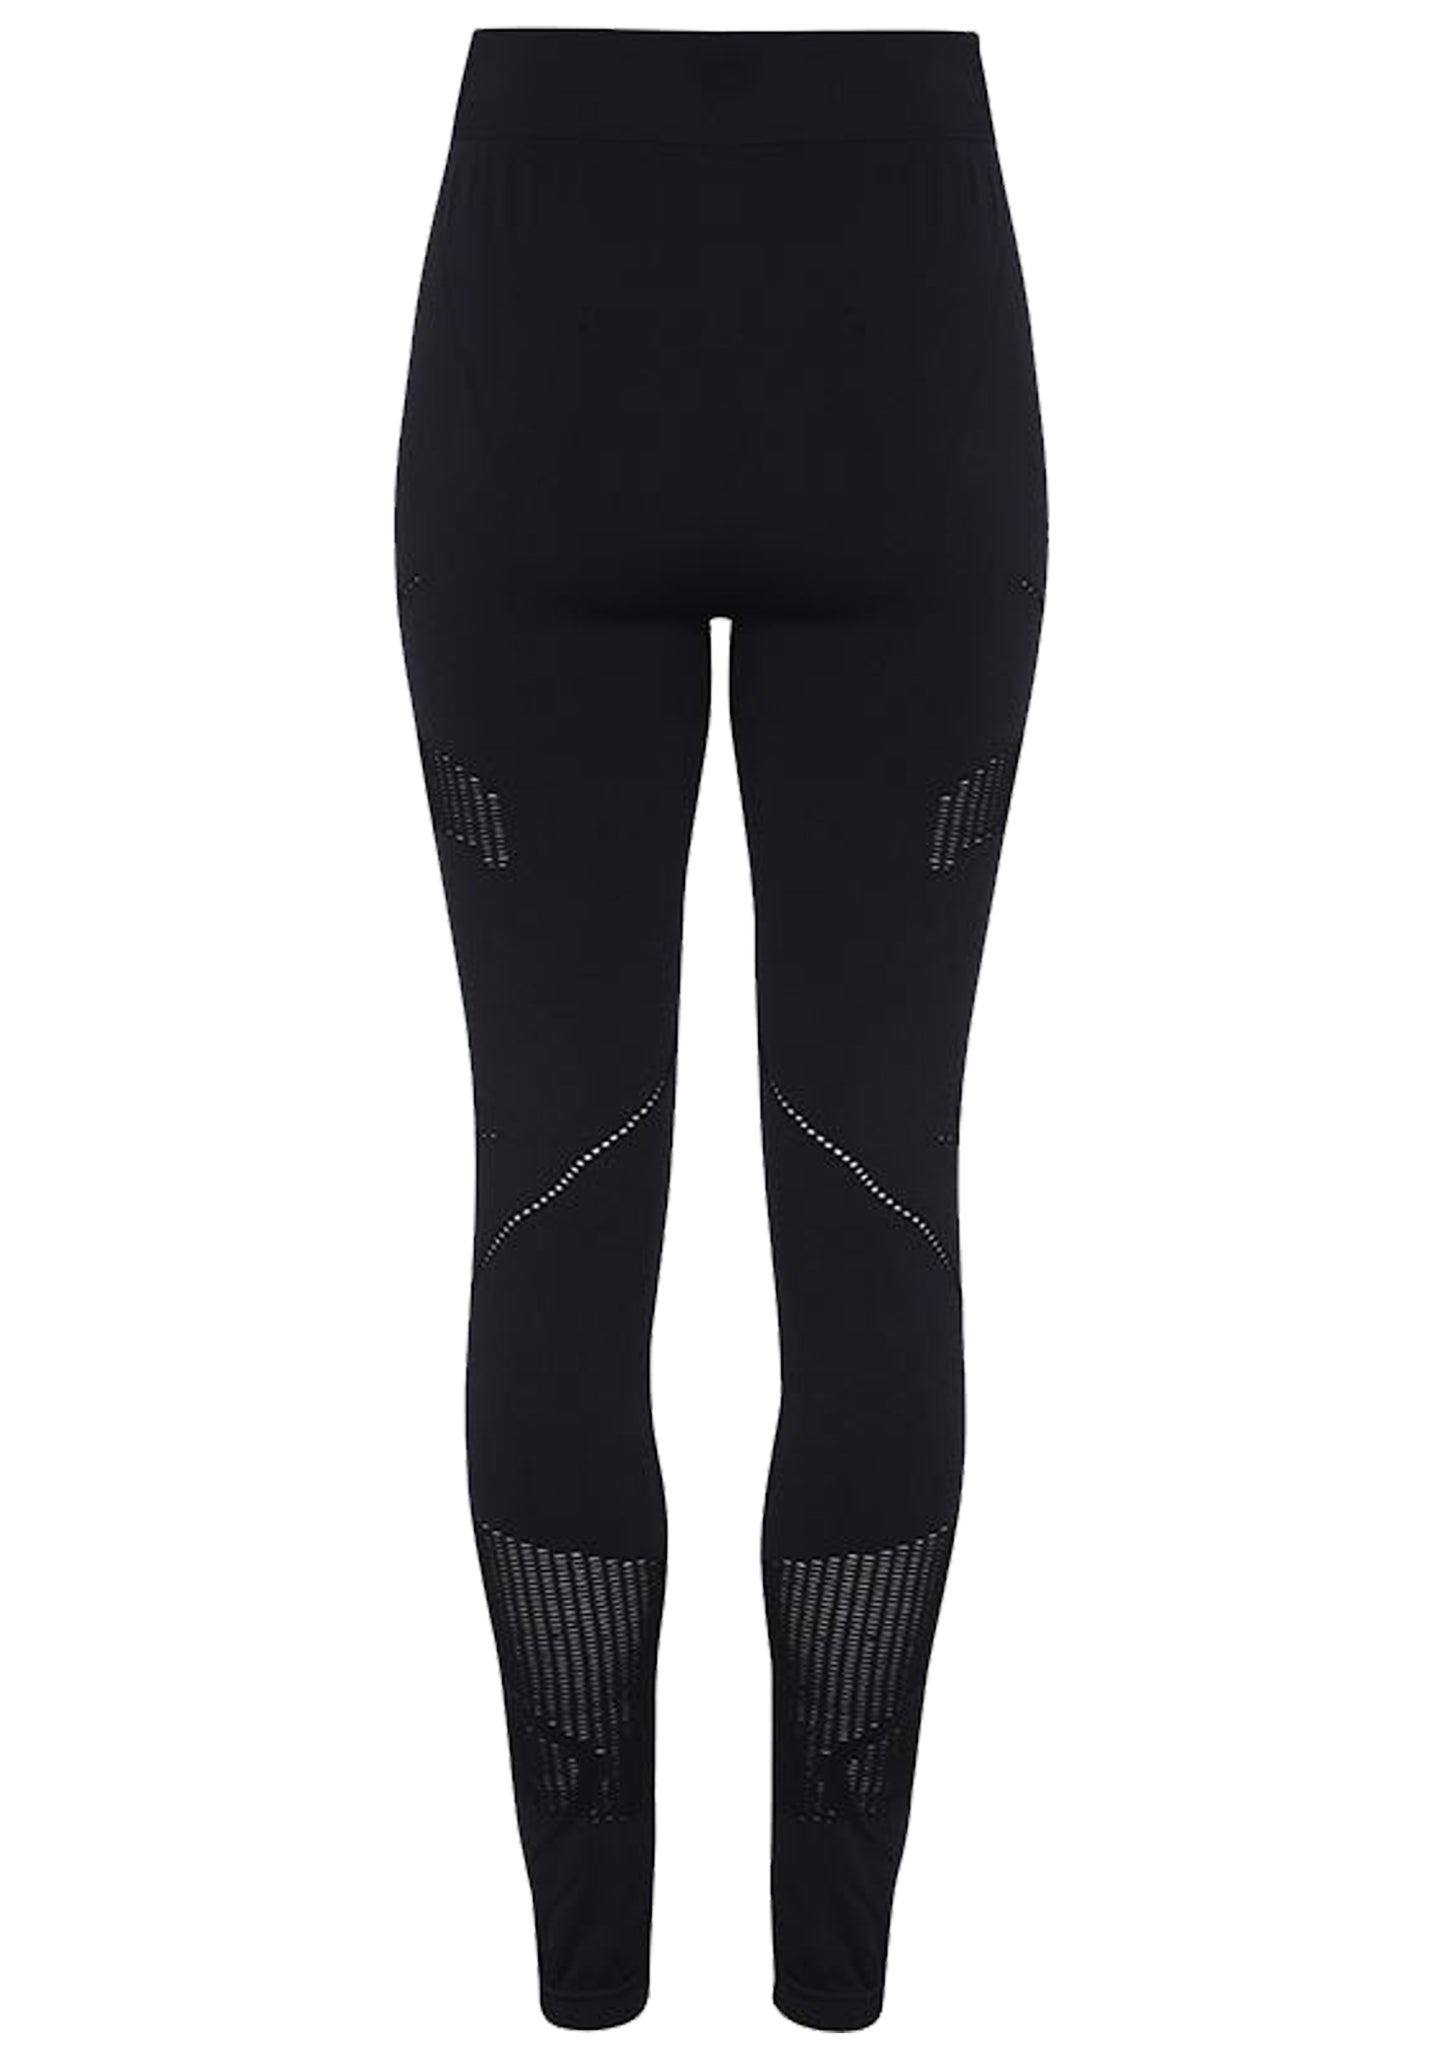 Womens IGYB Seamless '3D fit' Multi-Sport Sculpt leggings